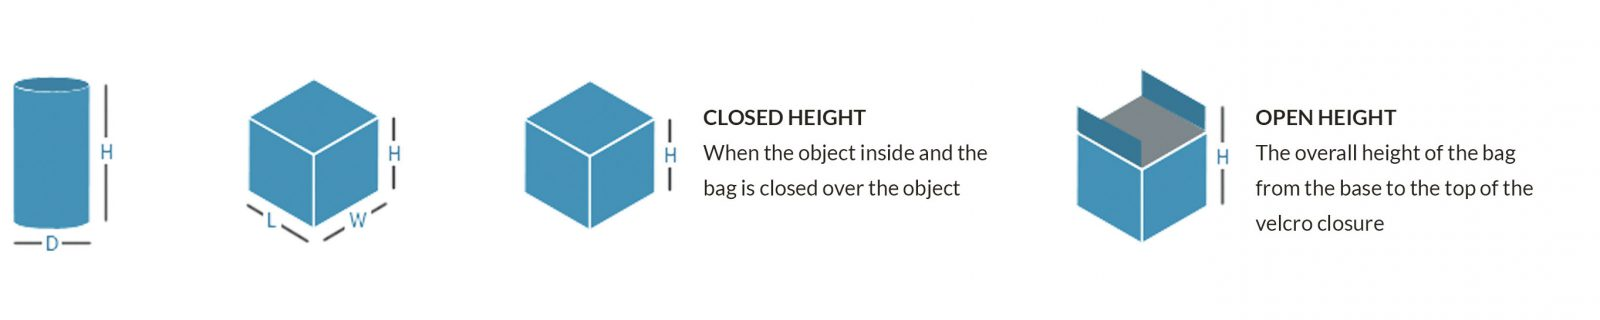 Closed & Open Height Measurements of Lifting Bags